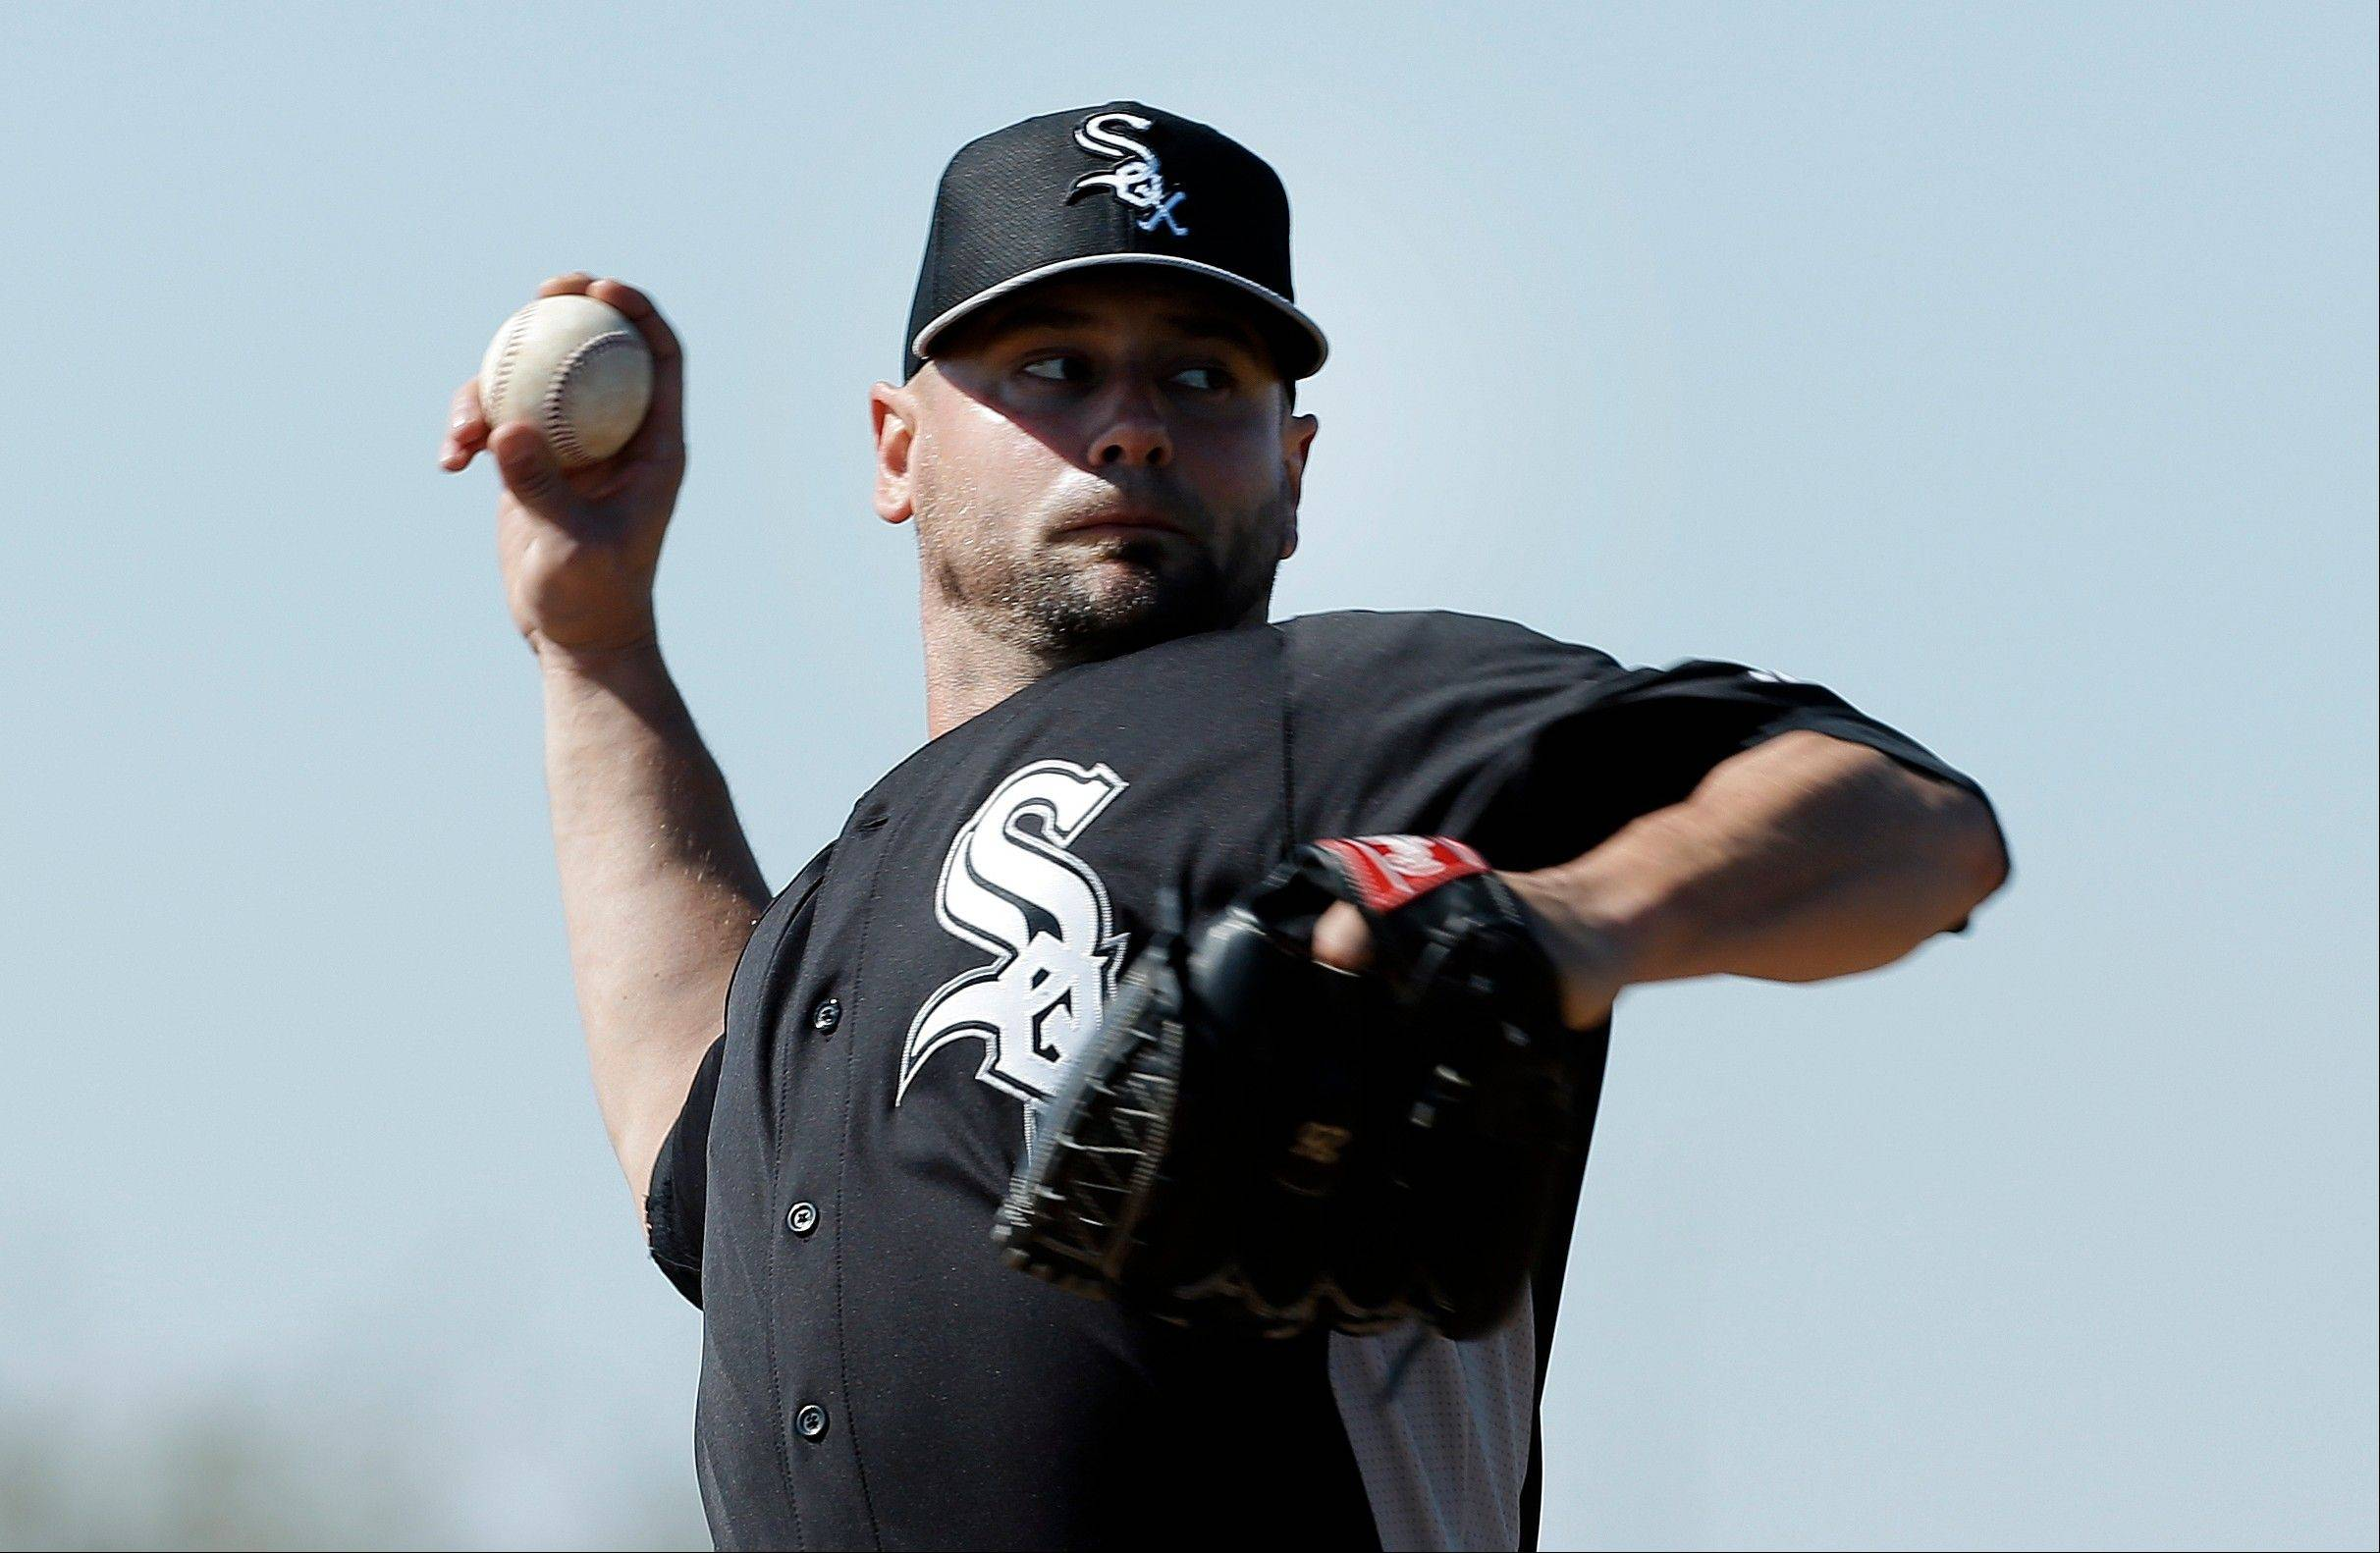 Chicago White Sox pitcher Jesse Crain throws during baseball spring training in Phoenix, Sunday, Feb. 17, 2013. (AP Photo/Paul Sancya)